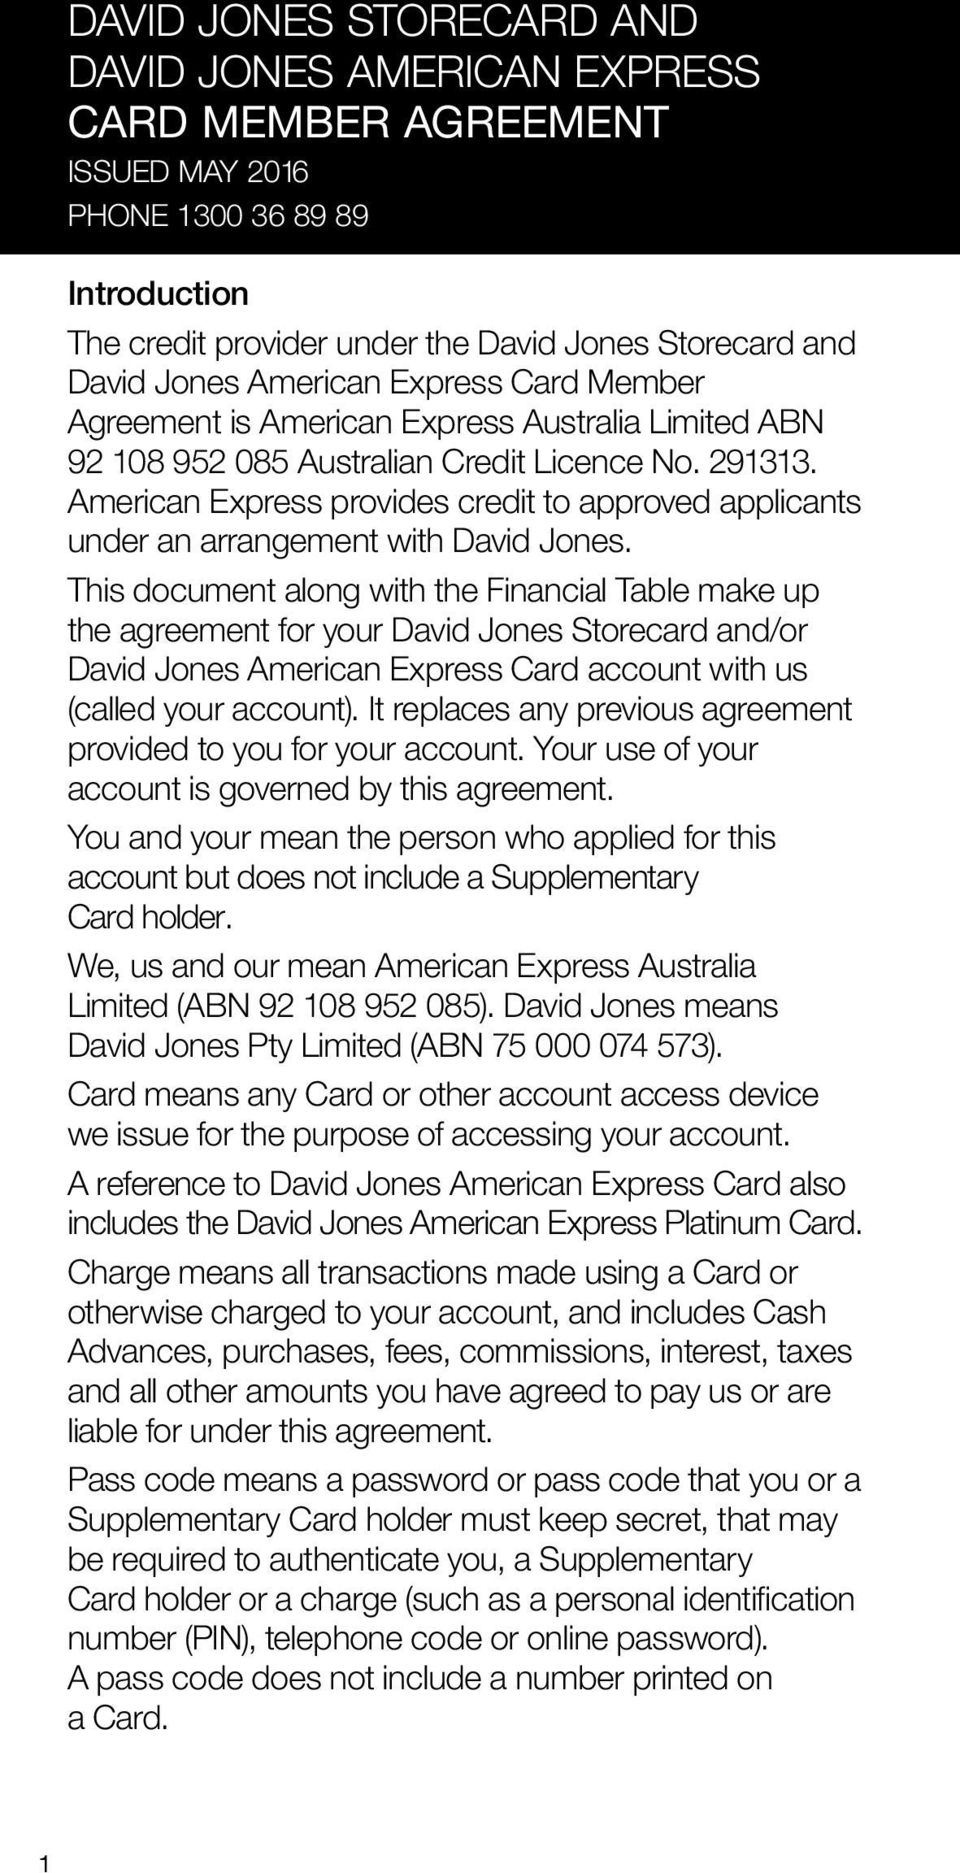 American Express provides credit to approved applicants under an arrangement with David Jones.